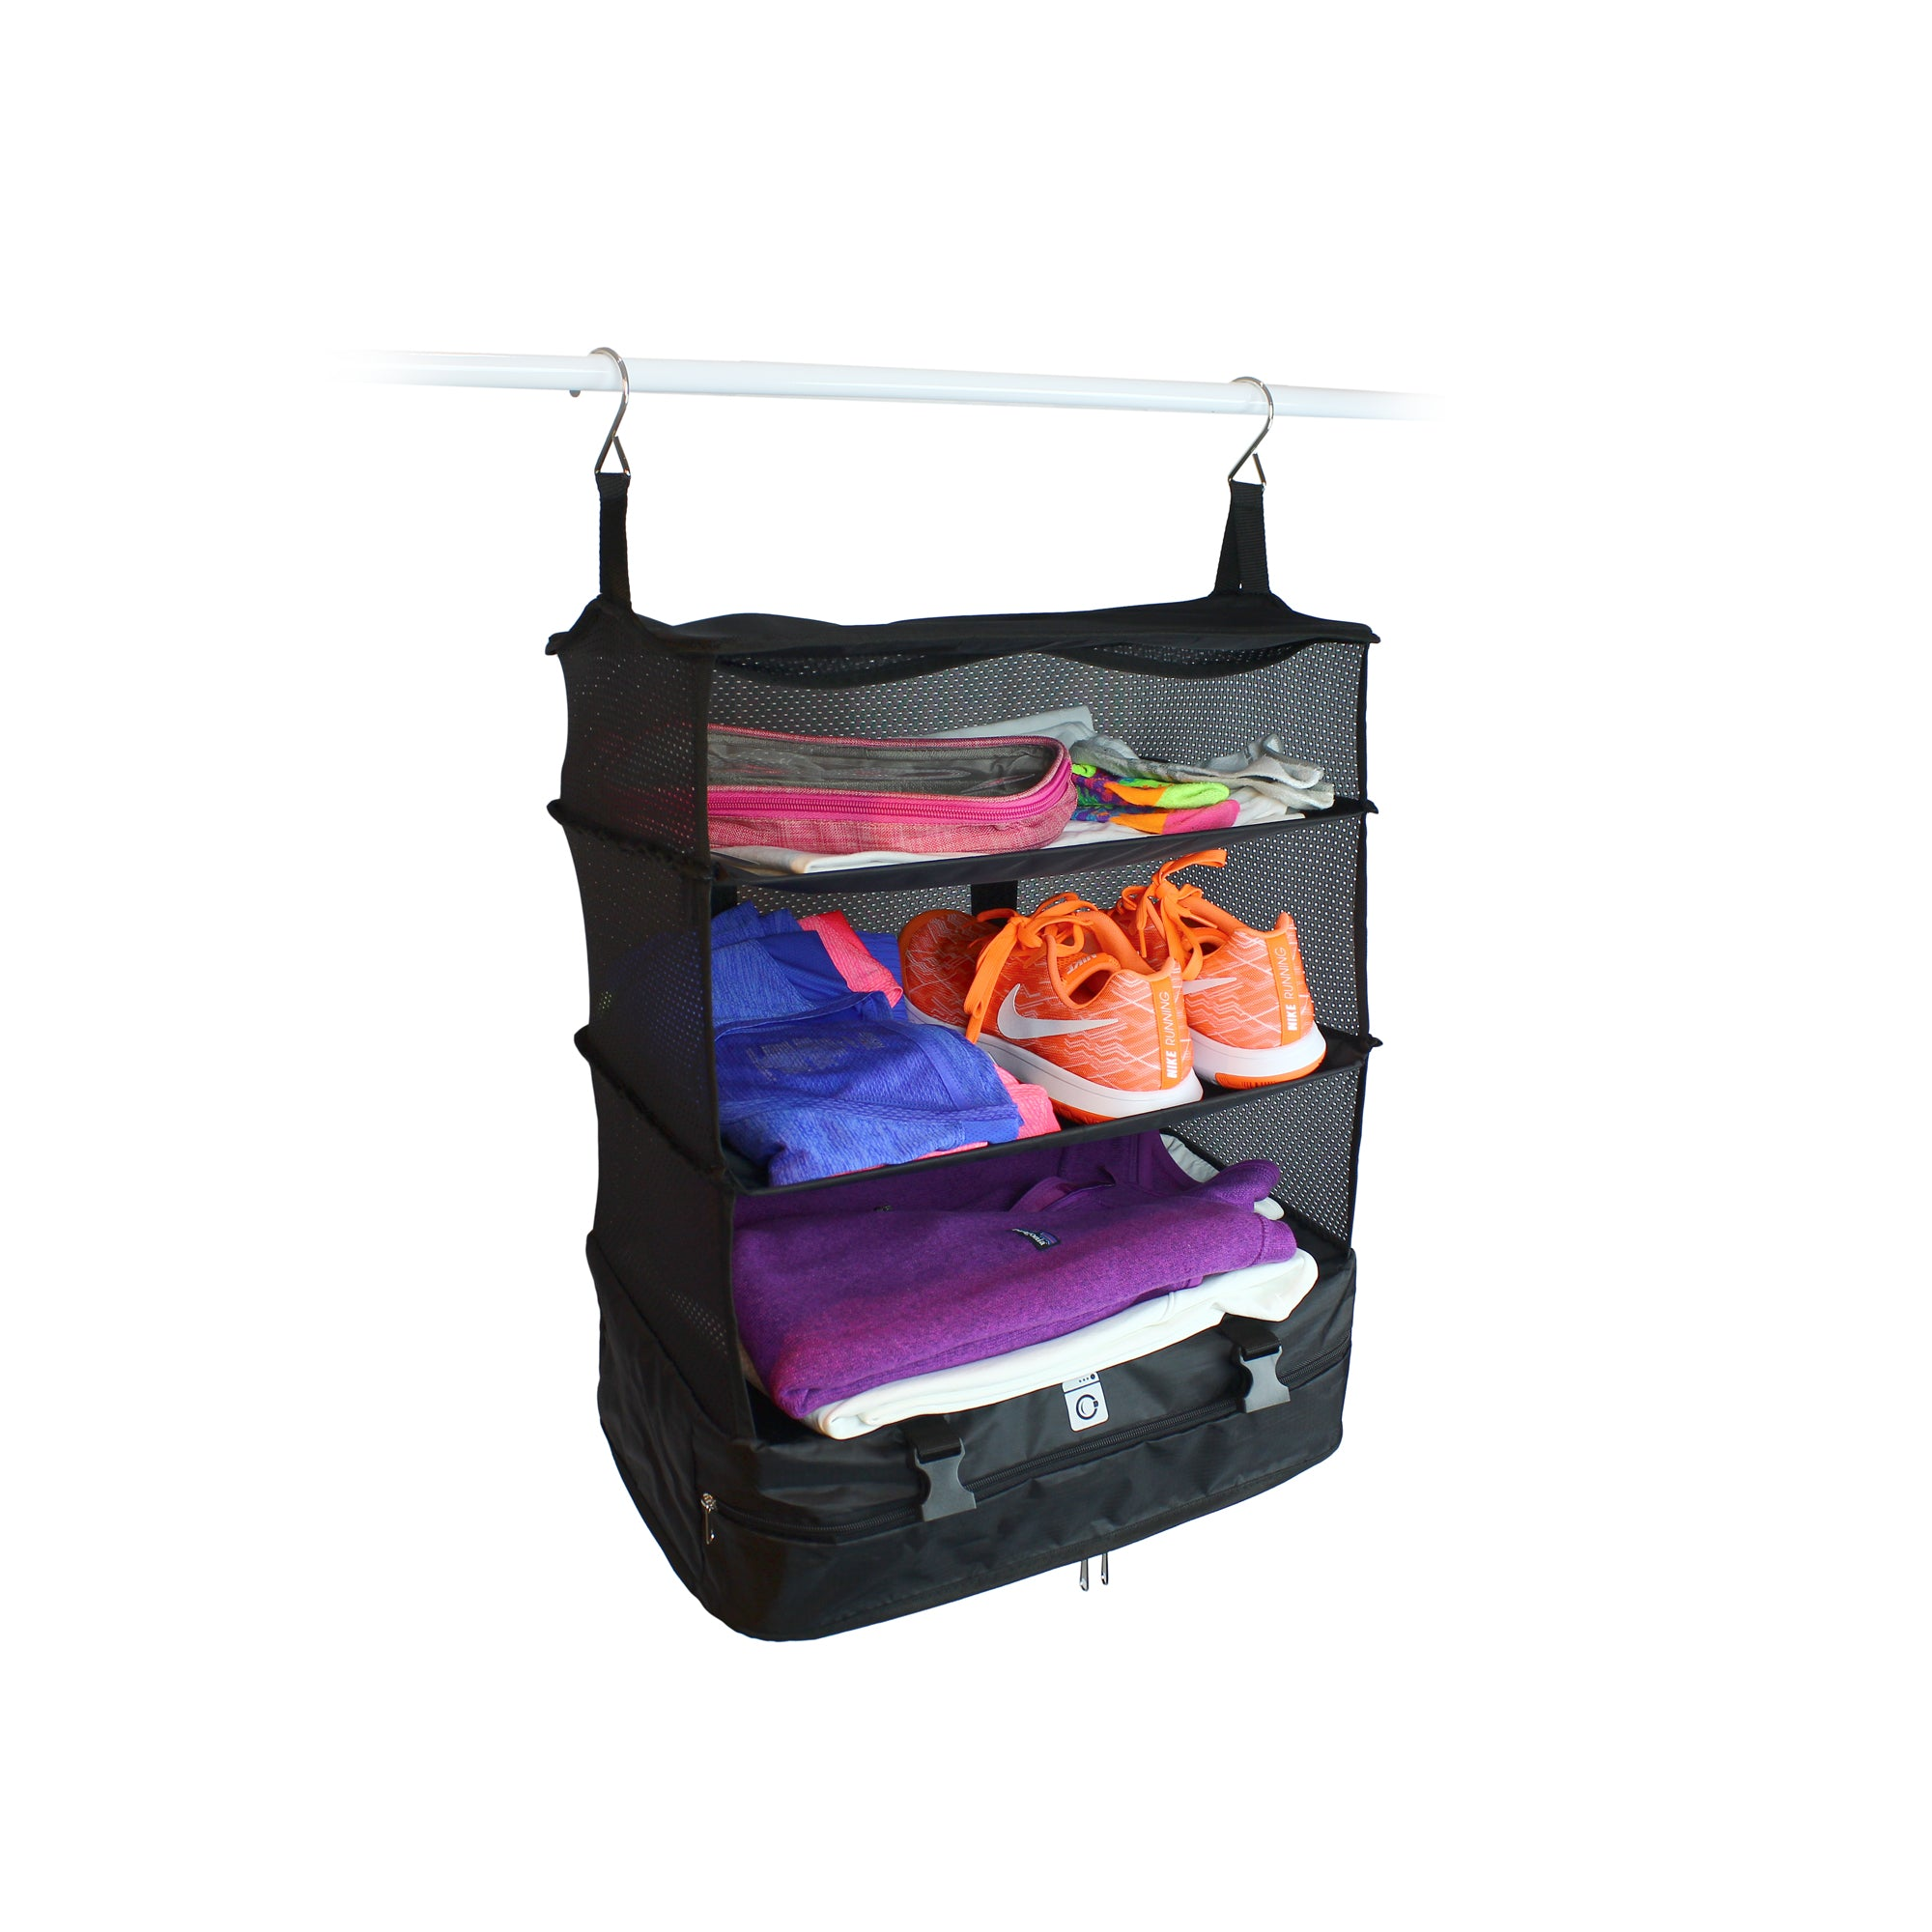 540873384f STOW N GO HANGING TRAVEL SHELVES - LARGE